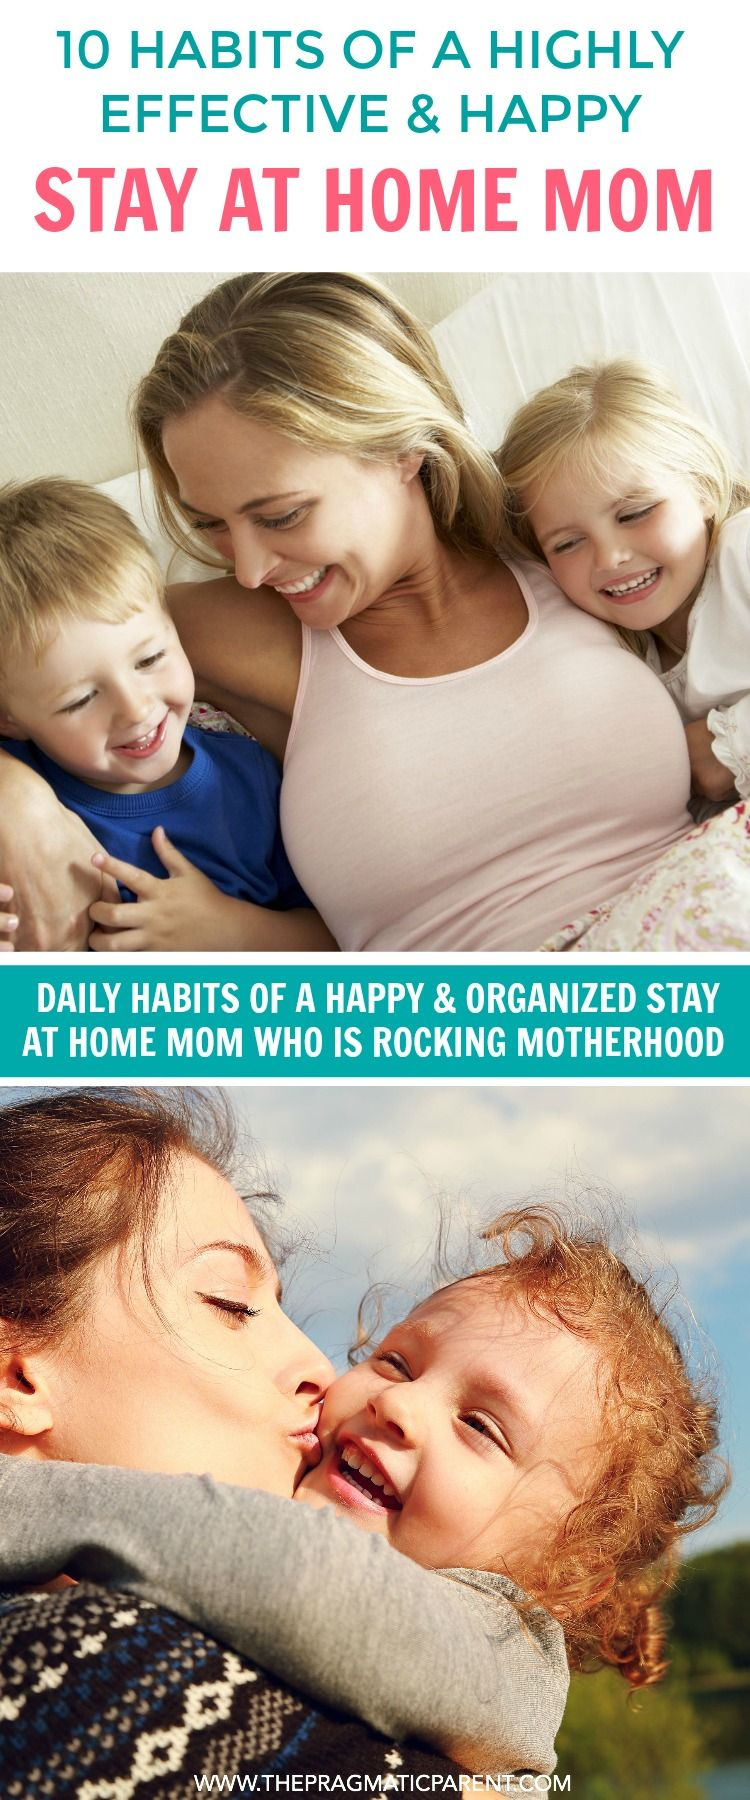 10 Things that Stay at Home Moms who are happy, organized and do daily to be highly effective and balance motherhood and home responsibilities. 10 game changing tips to being a happier Stay at Home Mom.